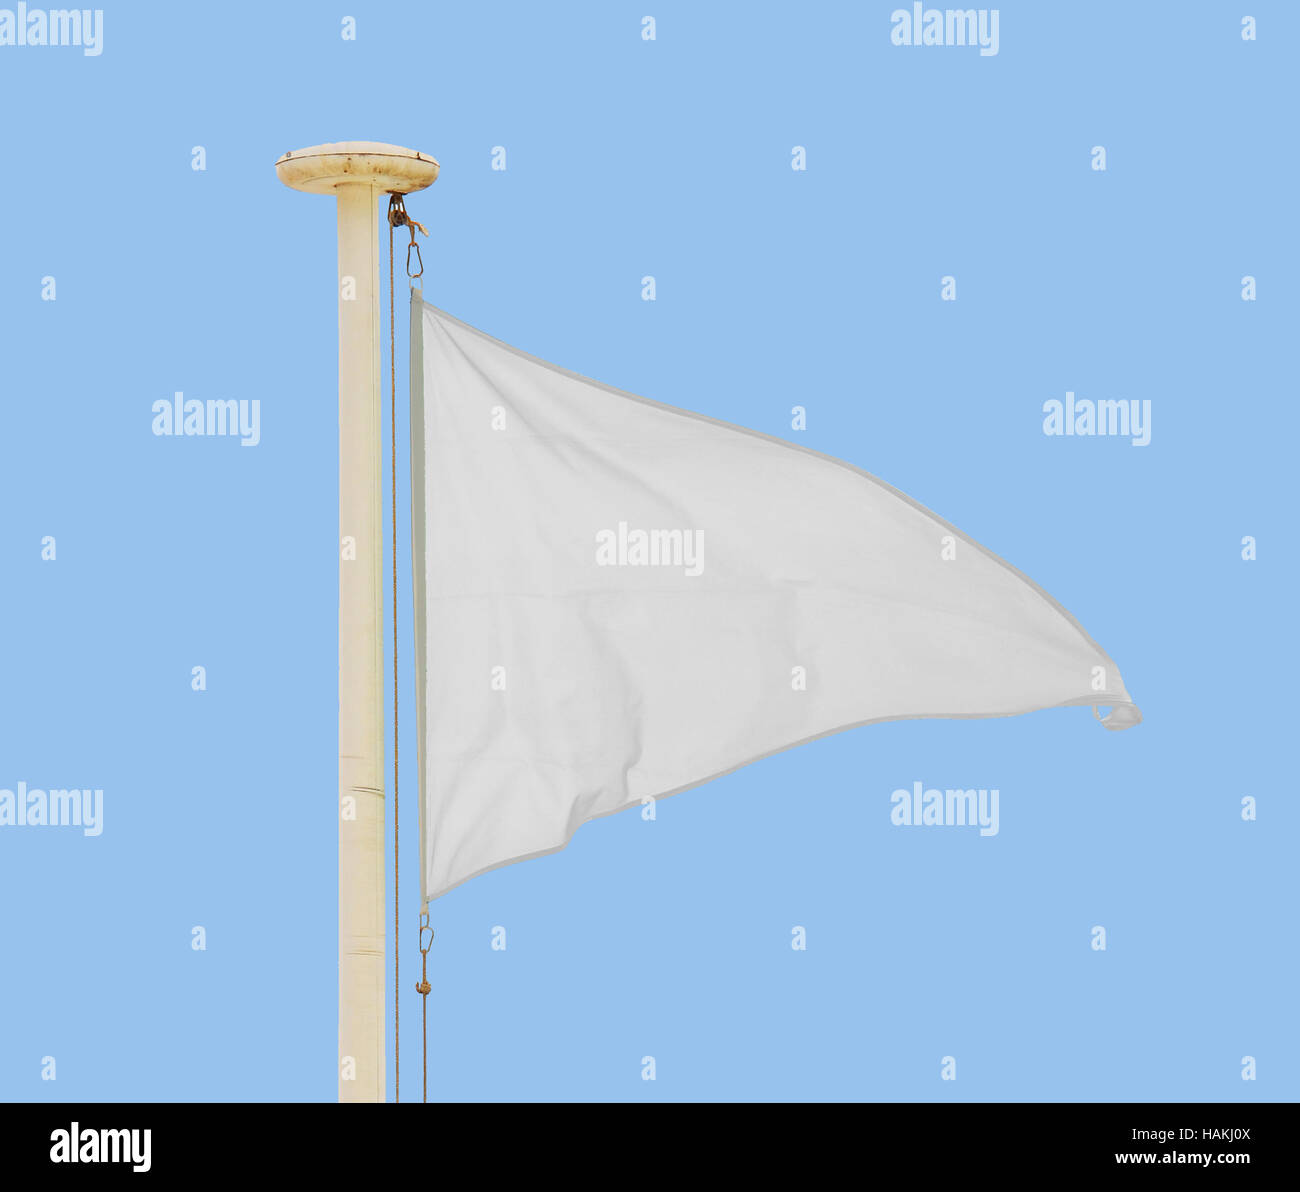 White pennant flying in a brisk breeze against a pale blue sky. - Stock Image